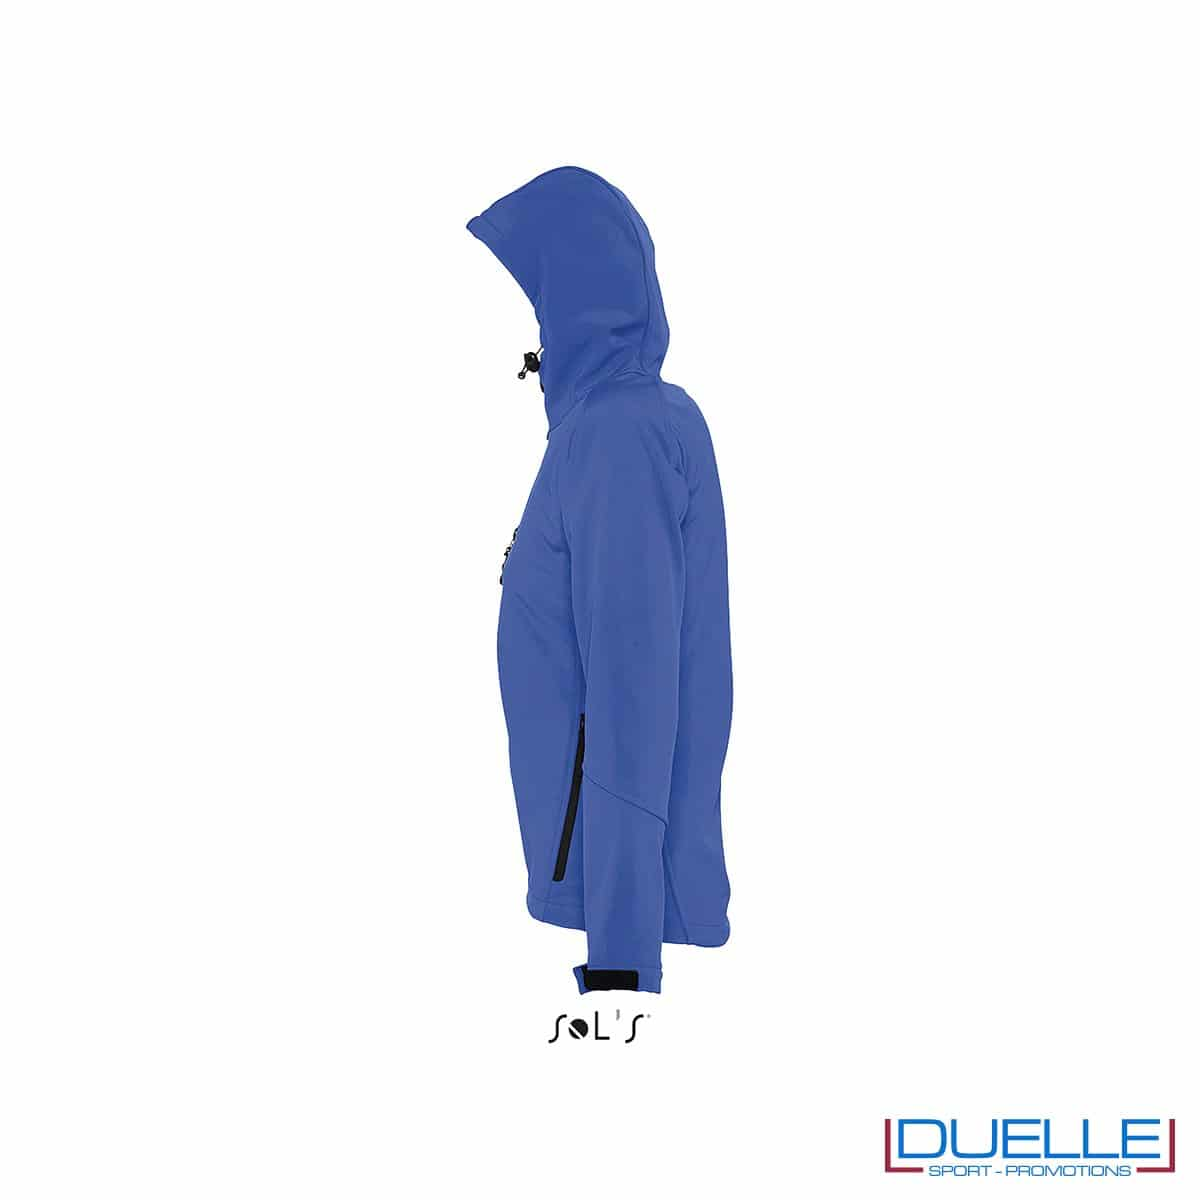 foto laterale di giacca softshell personalizzata in colore blu, foto laterale di giubbotti softshell personalizzati